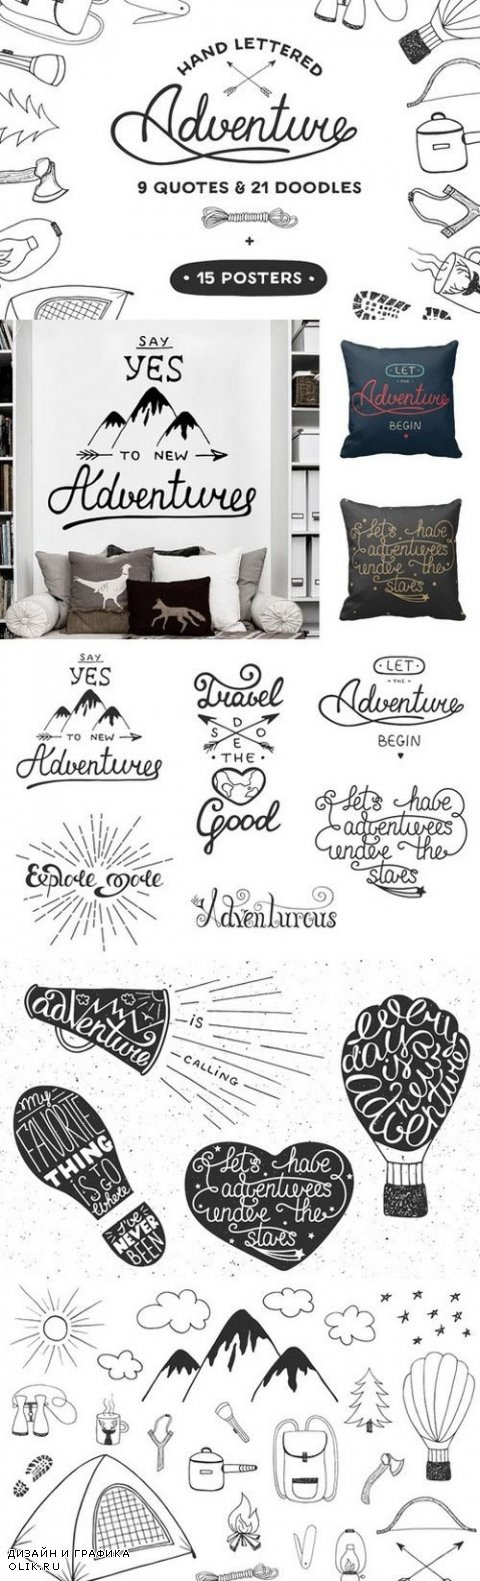 Hand lettered quotes and doodles - 654454